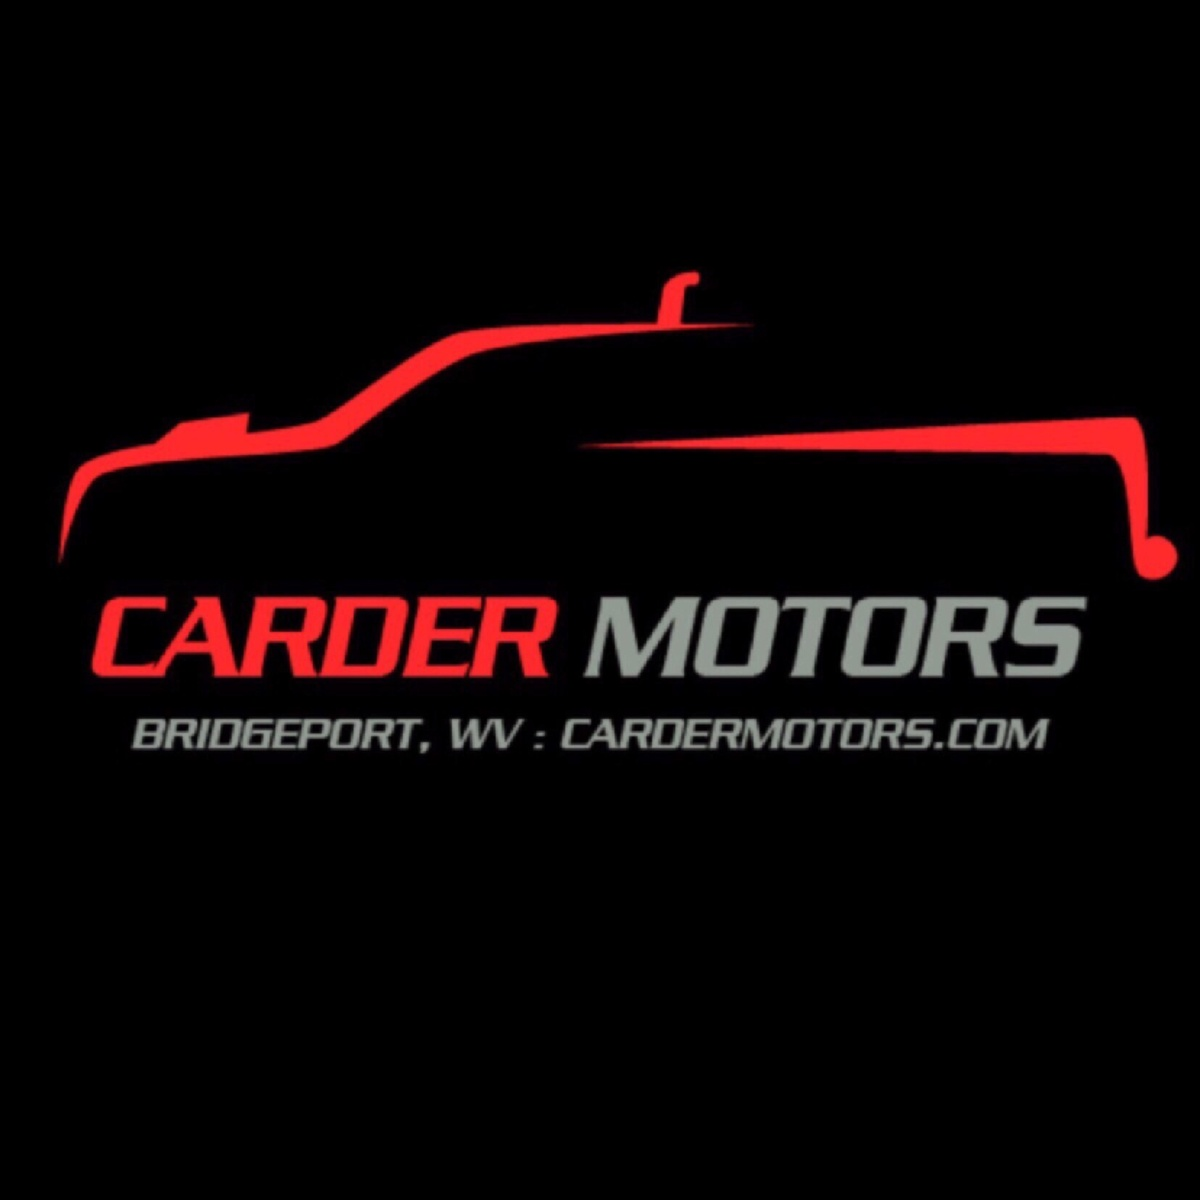 carder motors inc bridgeport wv read consumer reviews